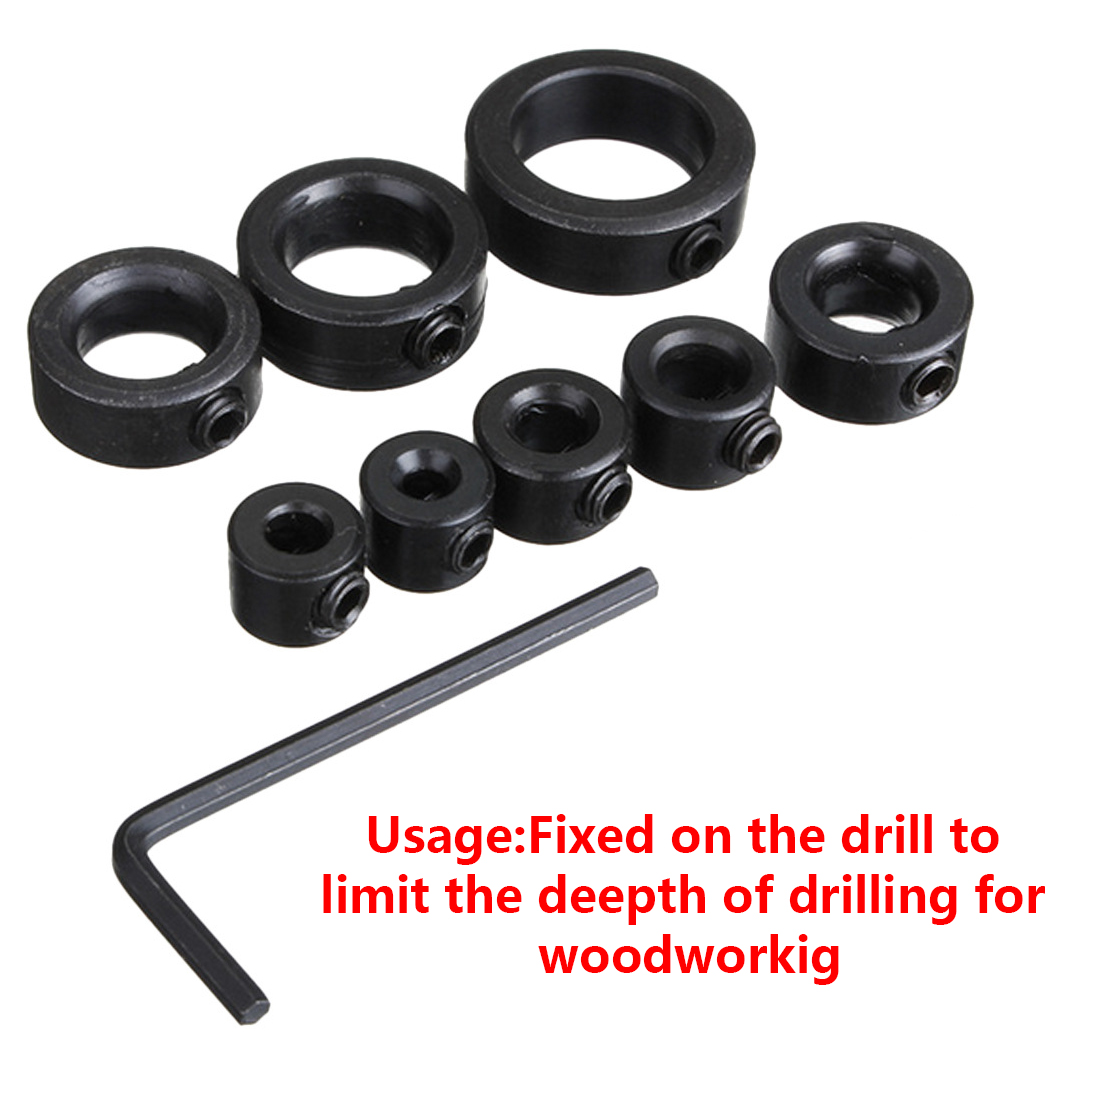 Woodworking Drill Depth Stop Collars Ring Dowel Shaft Chuck Wrench For Woodworking Tools 3mm 4mm 5mm 6mm 8mm 10mm 12mm/16mm image